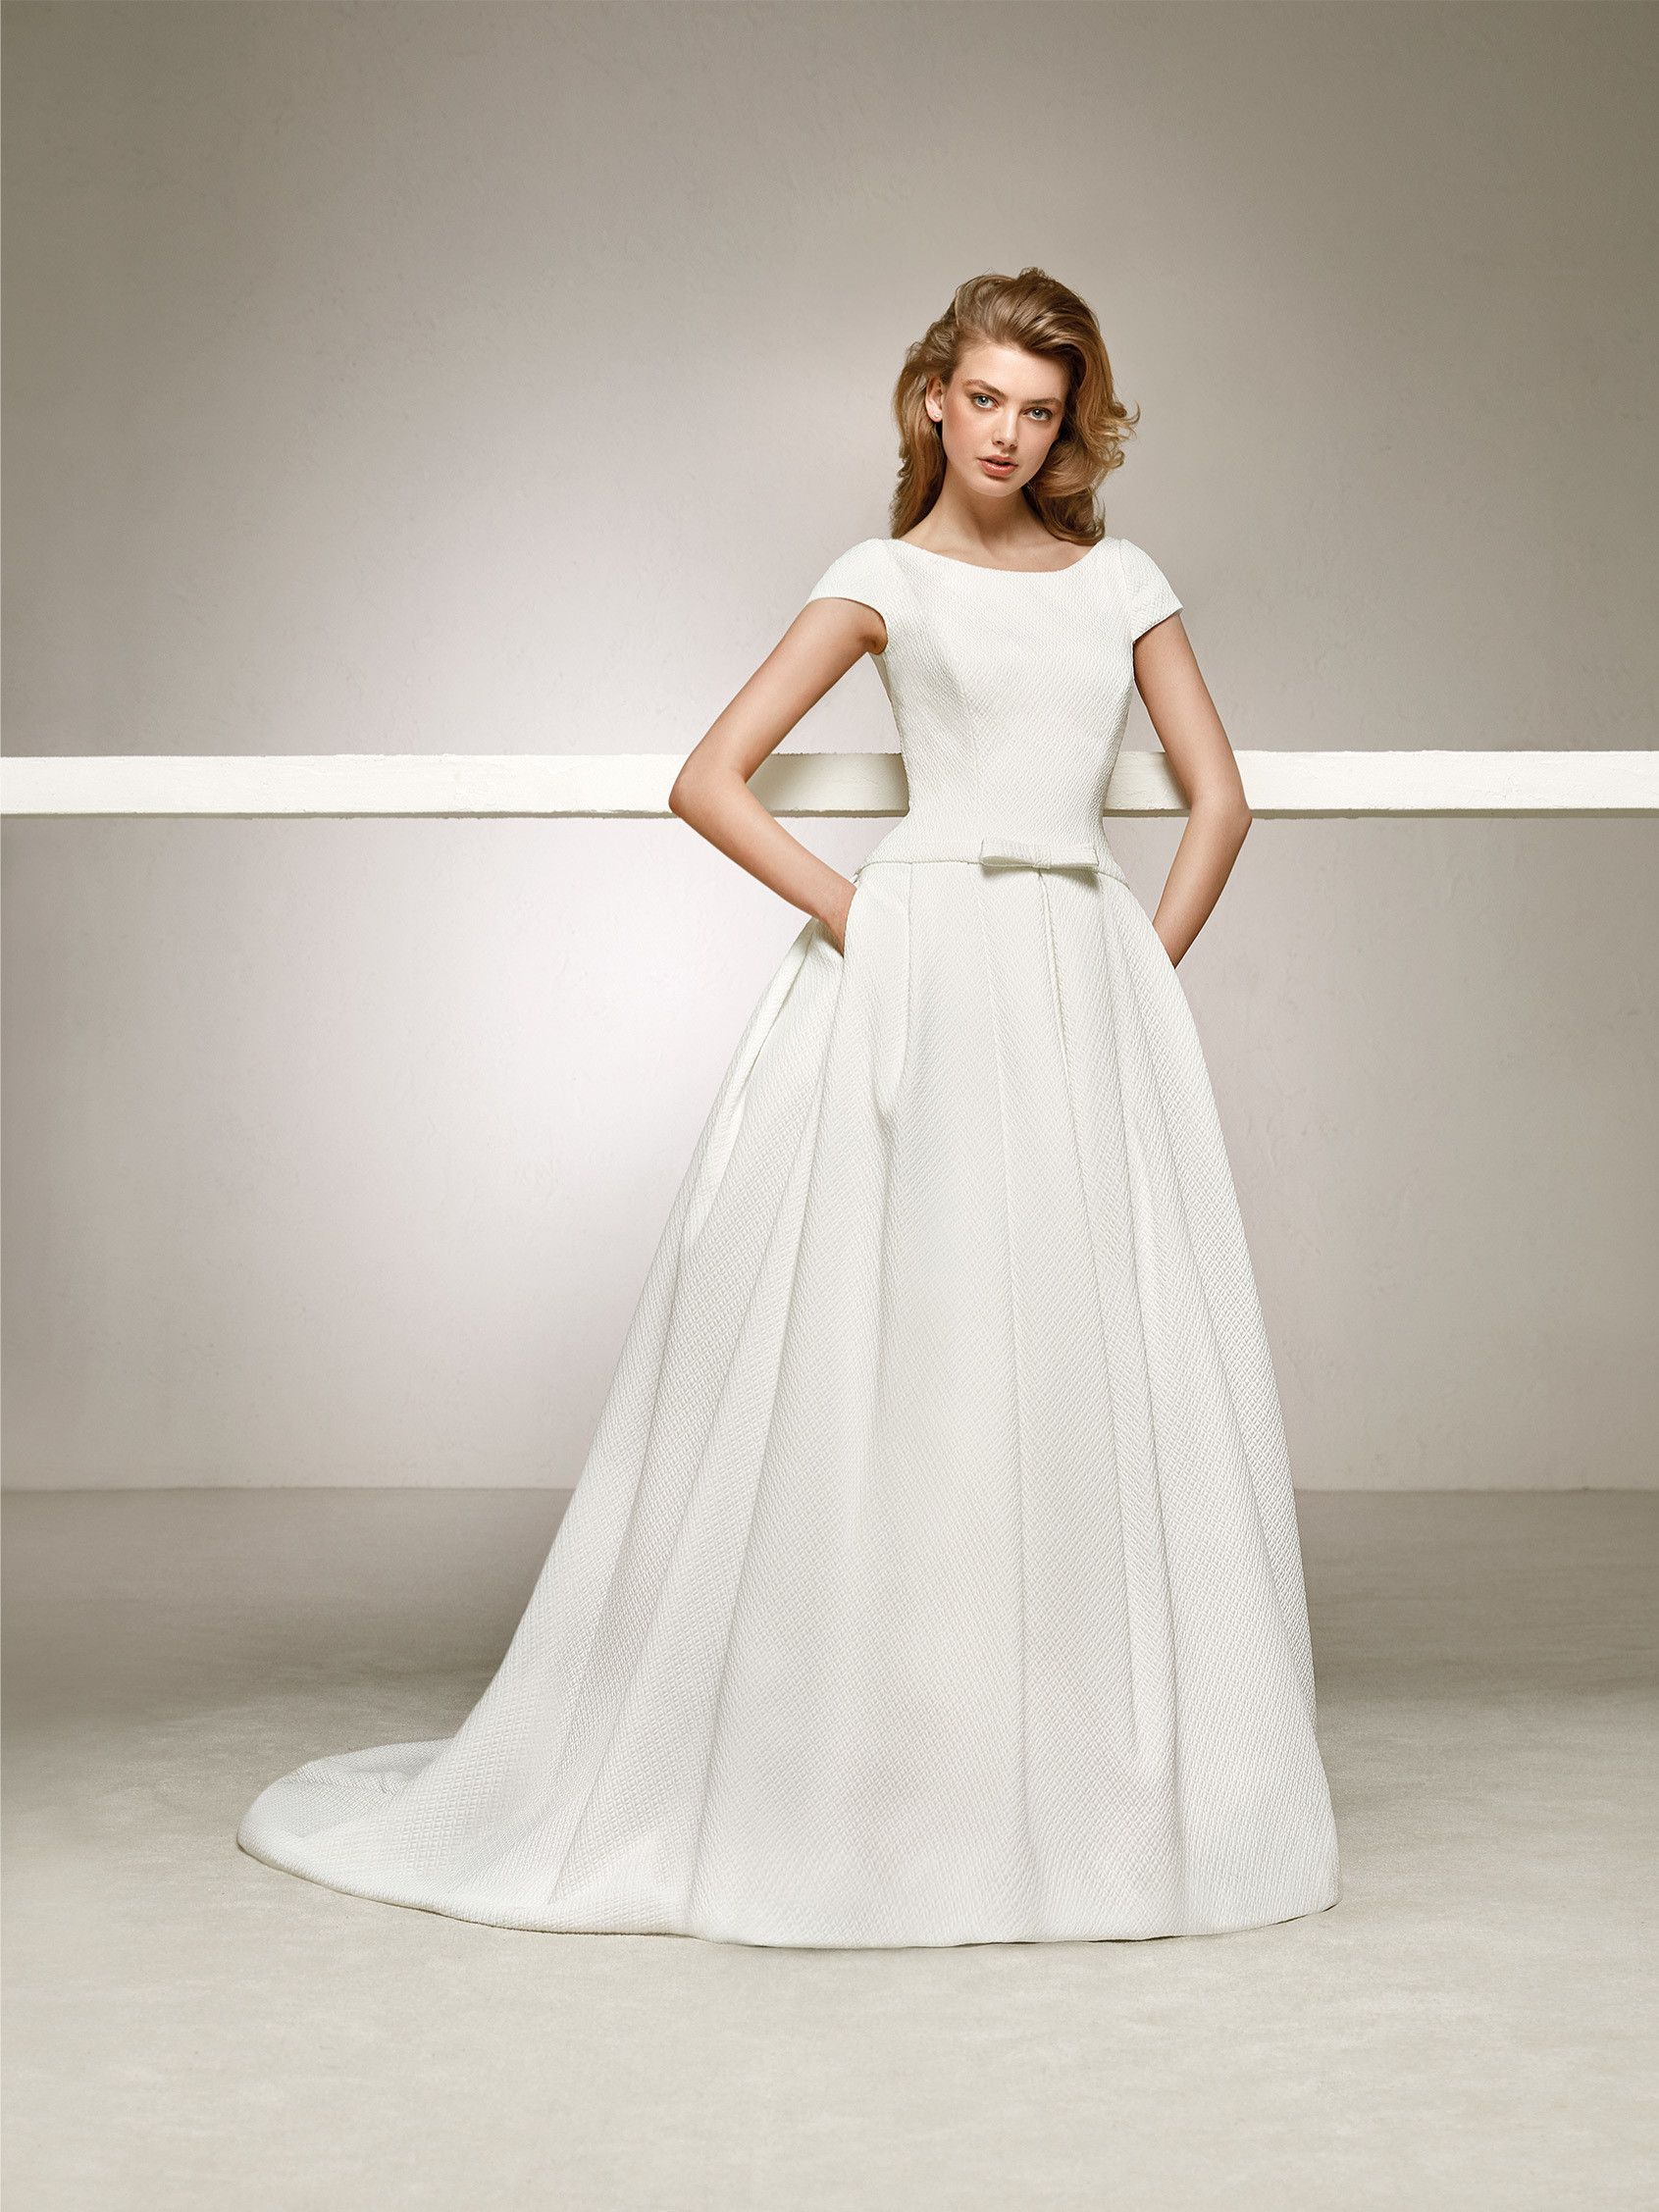 Sweet and elegant wedding dress with a round back and short sleeves